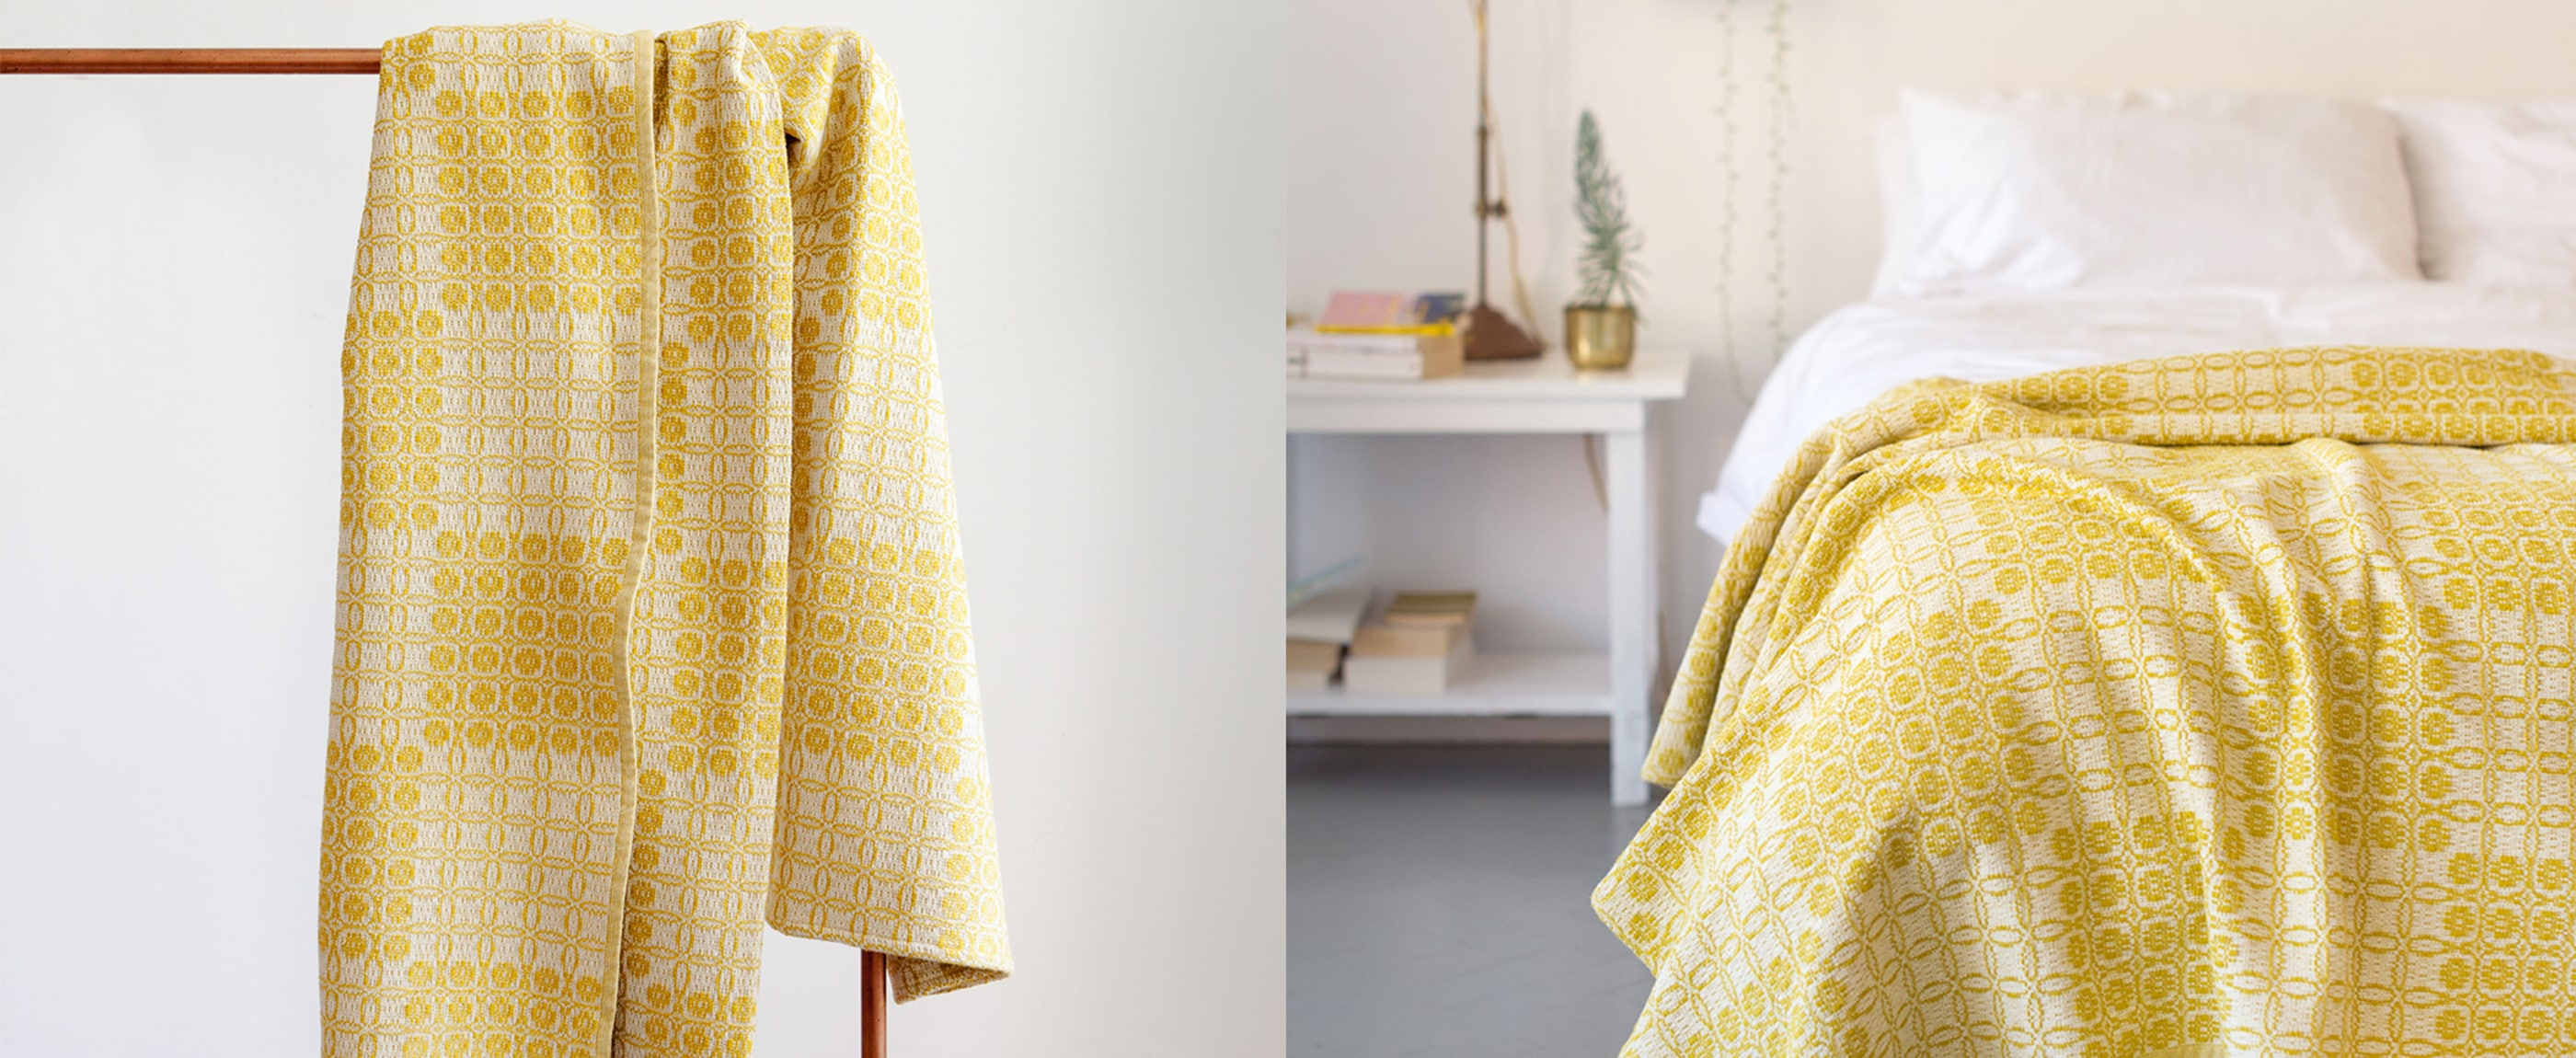 The mustard Mungo Juno blanket used as a bed throw